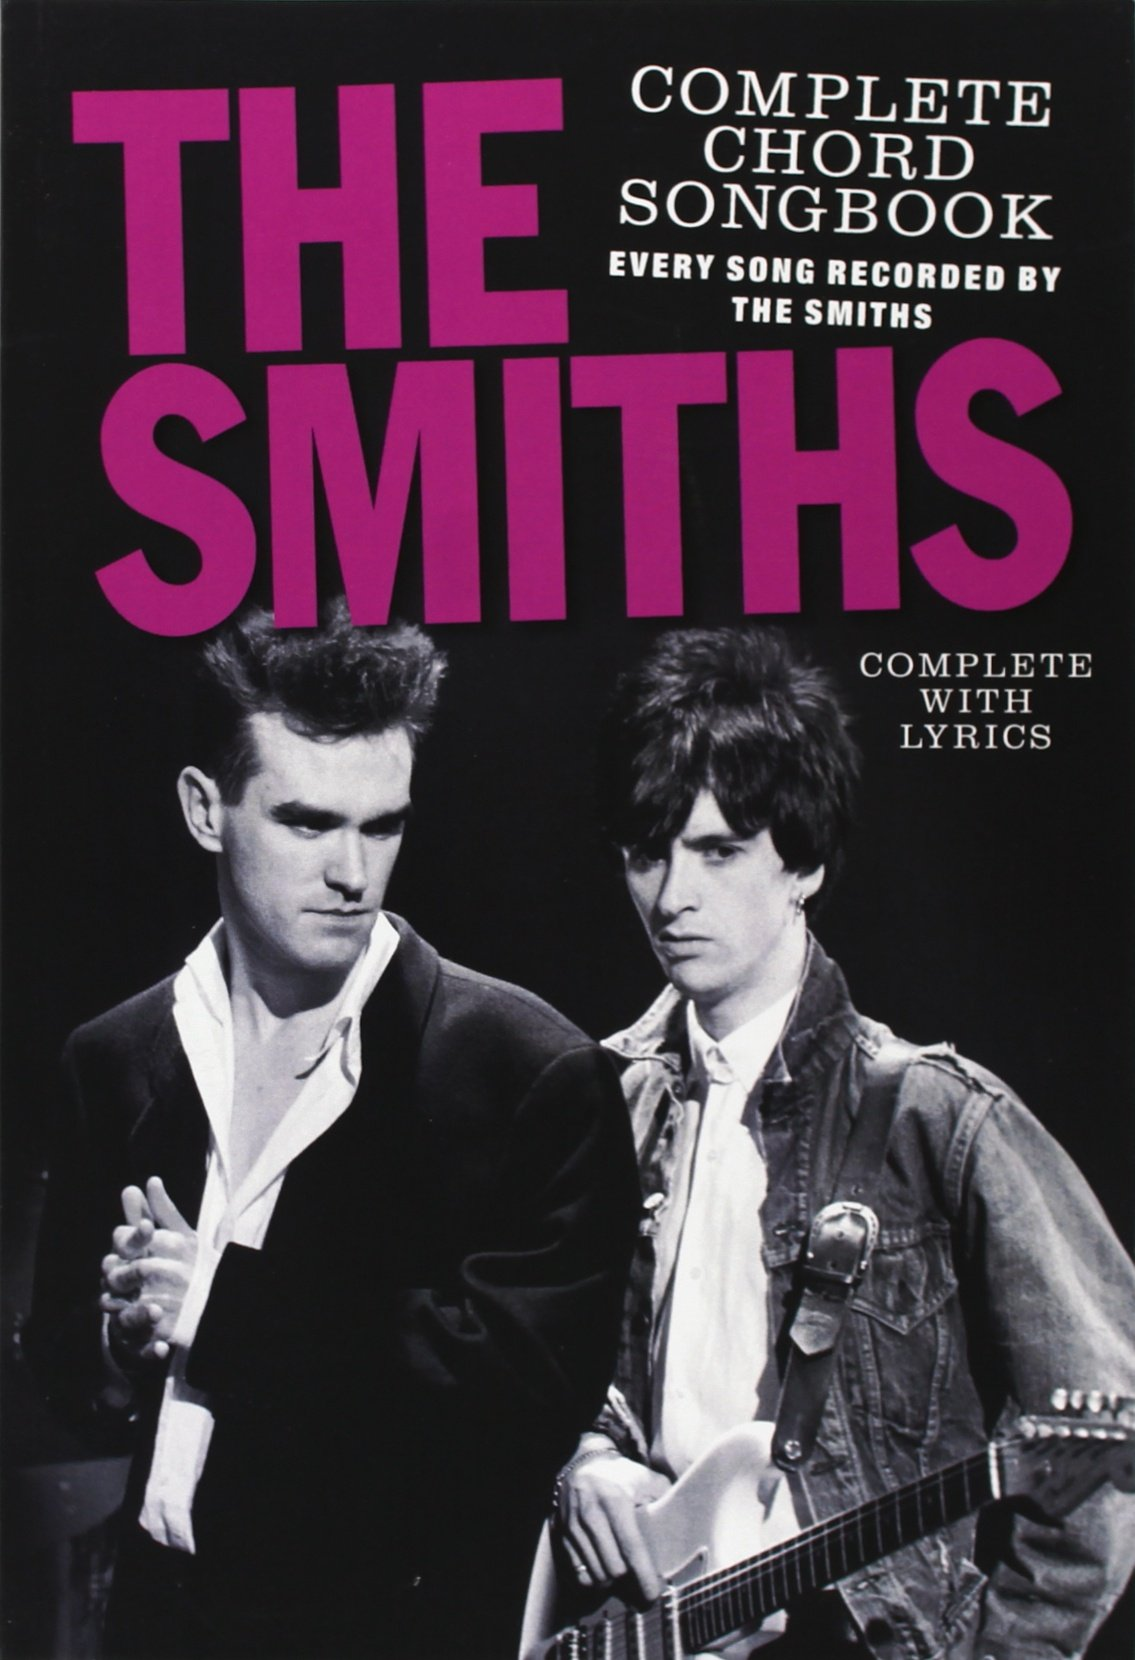 Download The Smiths Complete Chord Songbook (Every Song Recorded by The Smiths, Complete with Lyrics) PDF